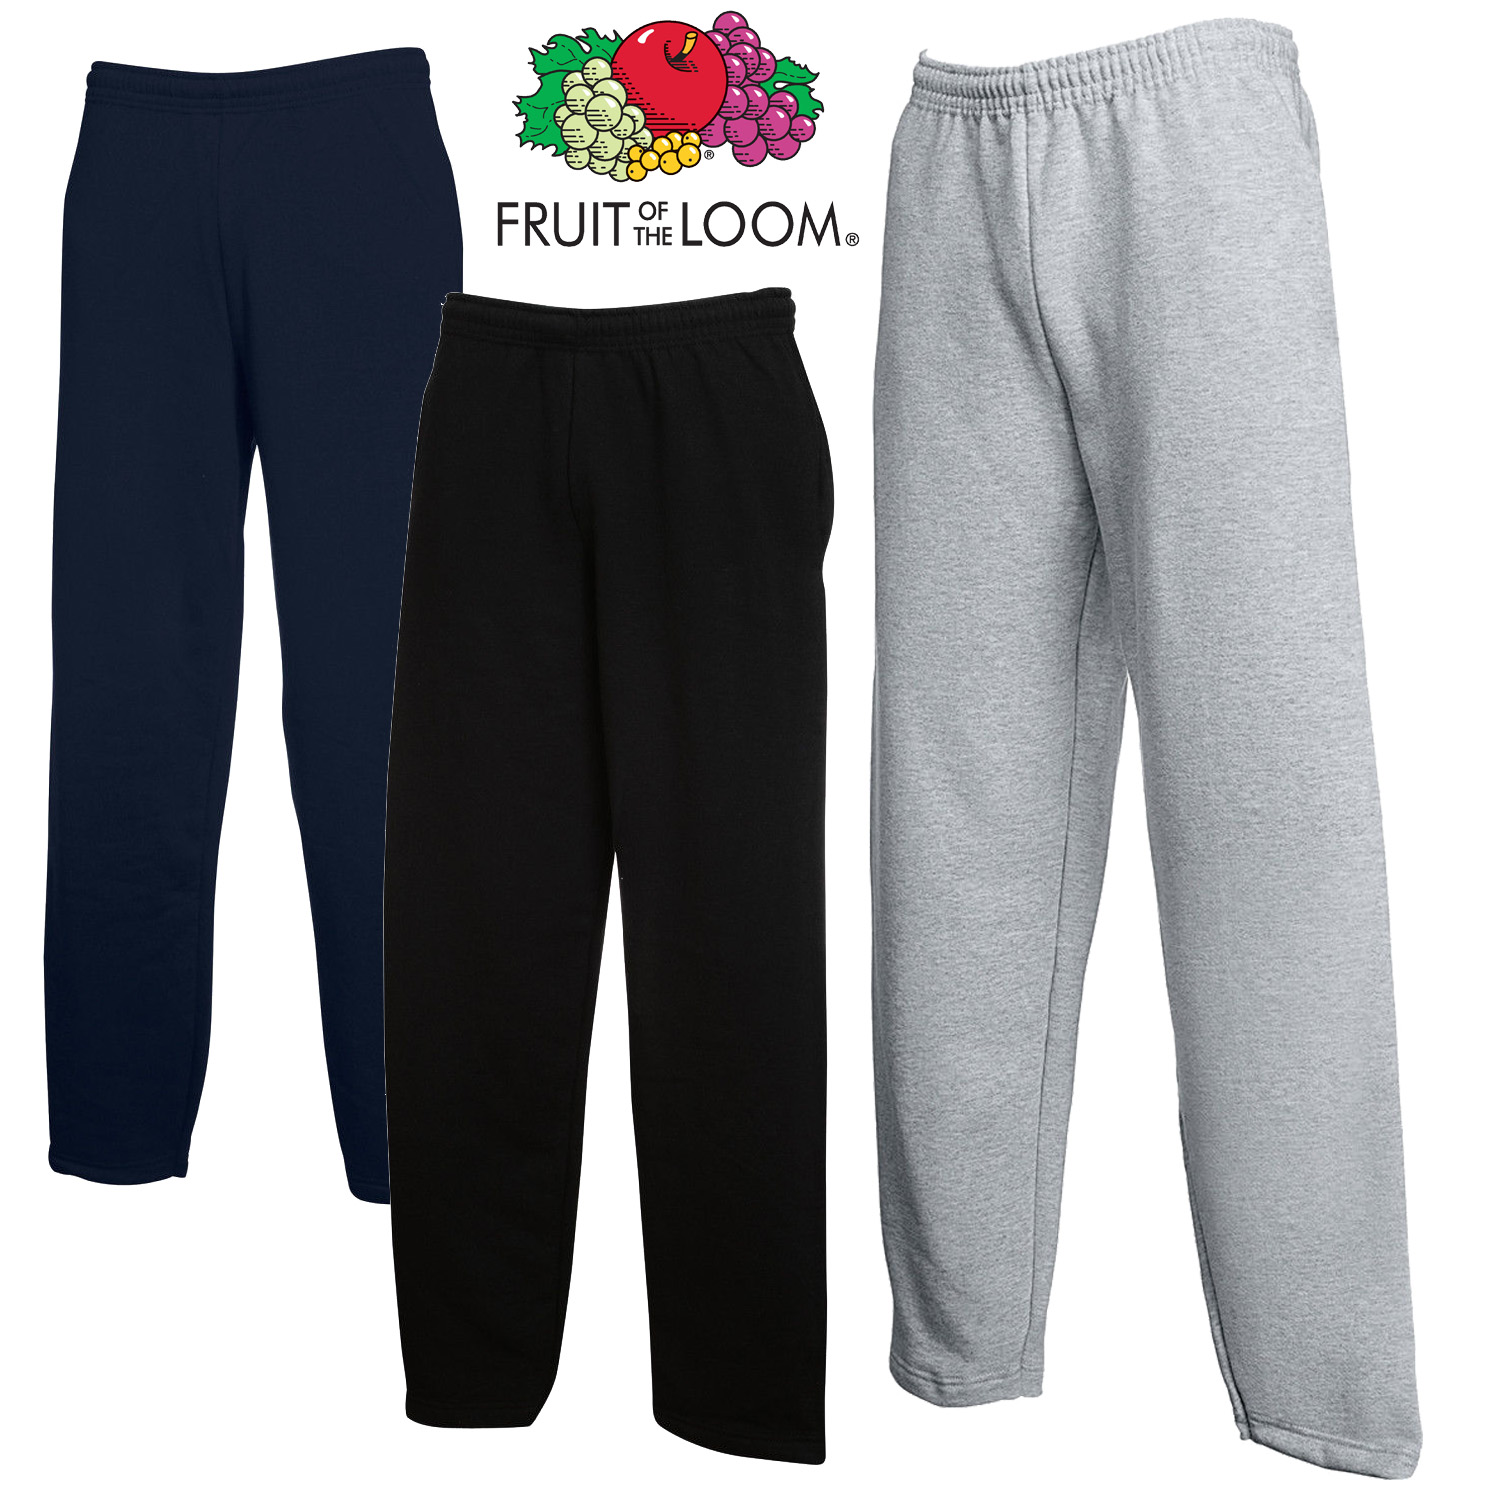 Fruit of the Loom Classic Open Leg Sweatpants Trousers Leggings Joggers